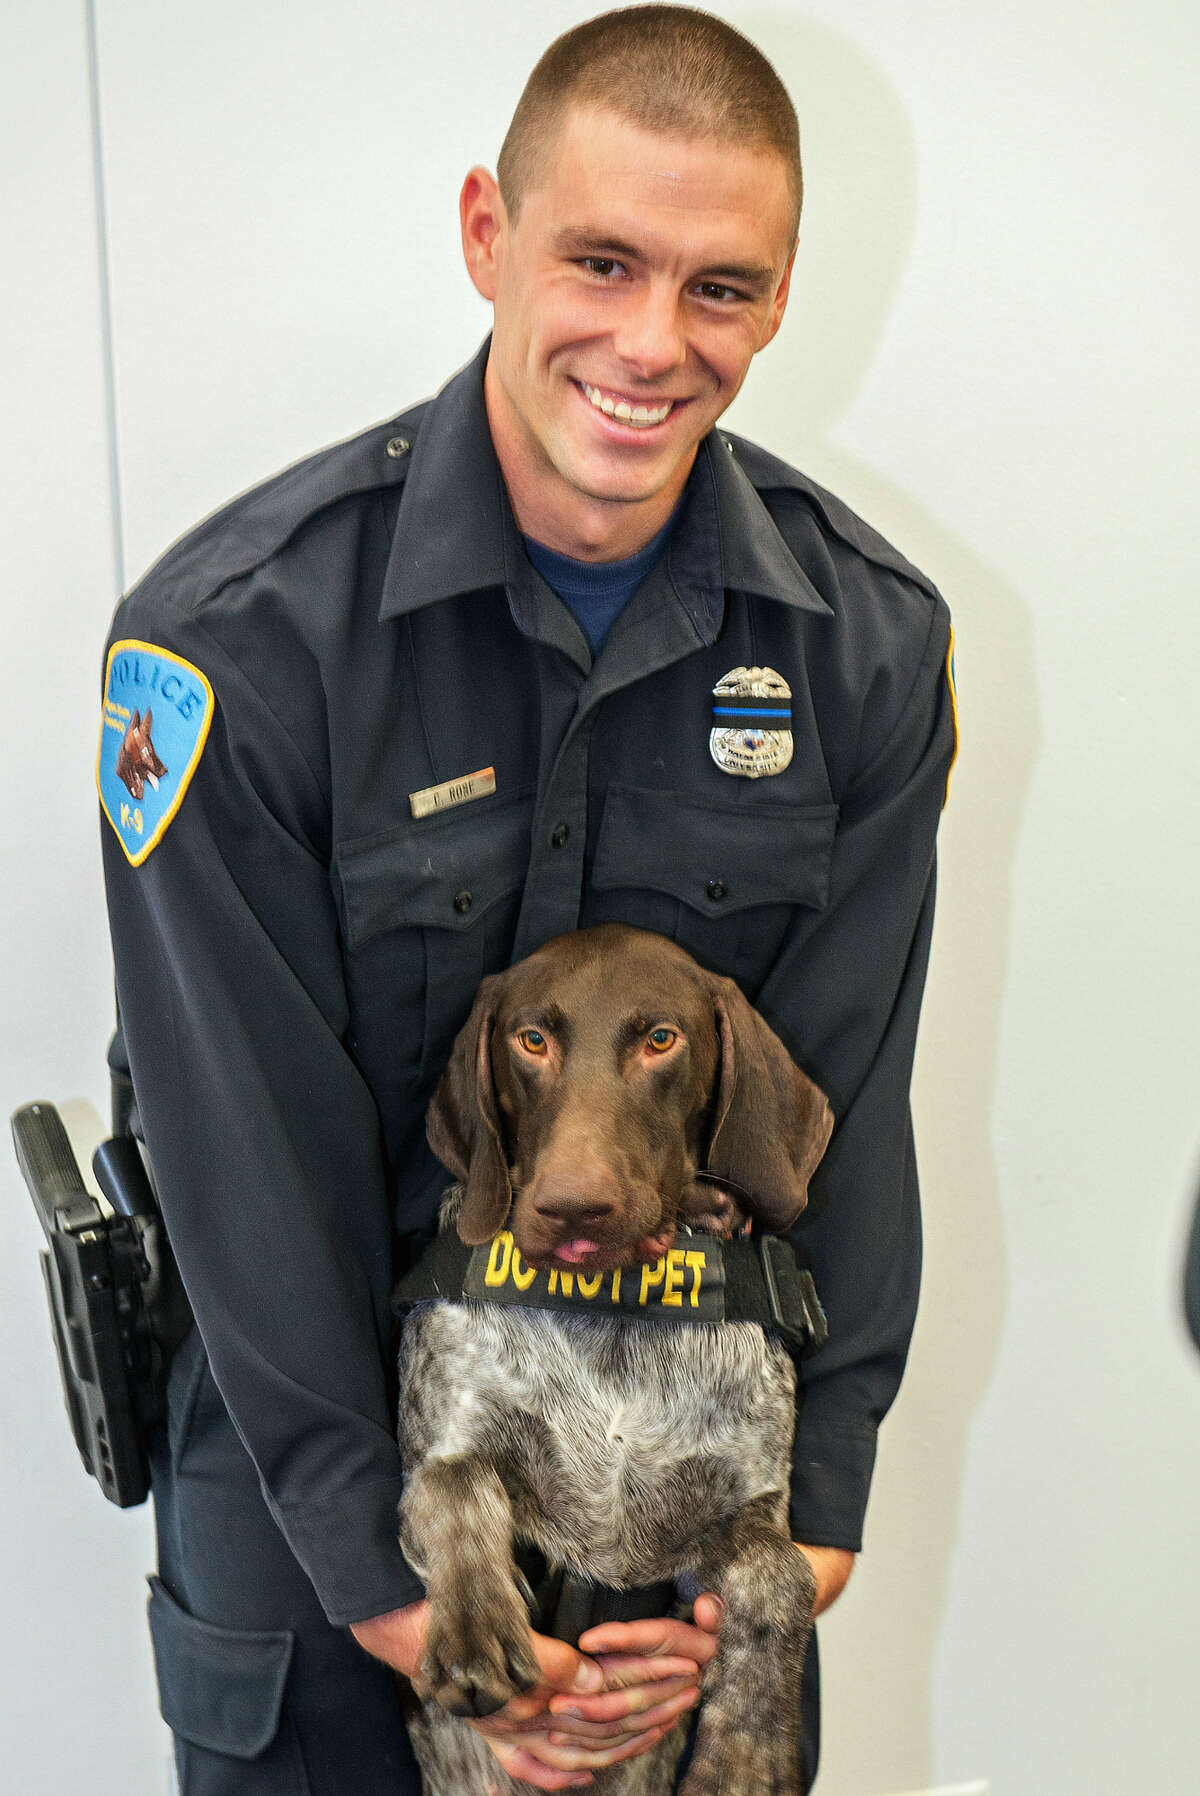 This undated photo provided by Wayne State University shows university police officer Collin Rose, who was shot in the head while on patrol near a university campus in Detroit on Tuesday, Nov. 22, 2016. Rose is a five-year veteran of the department who works in the canine unit. (MJ Murawka/Wayne State University via AP)